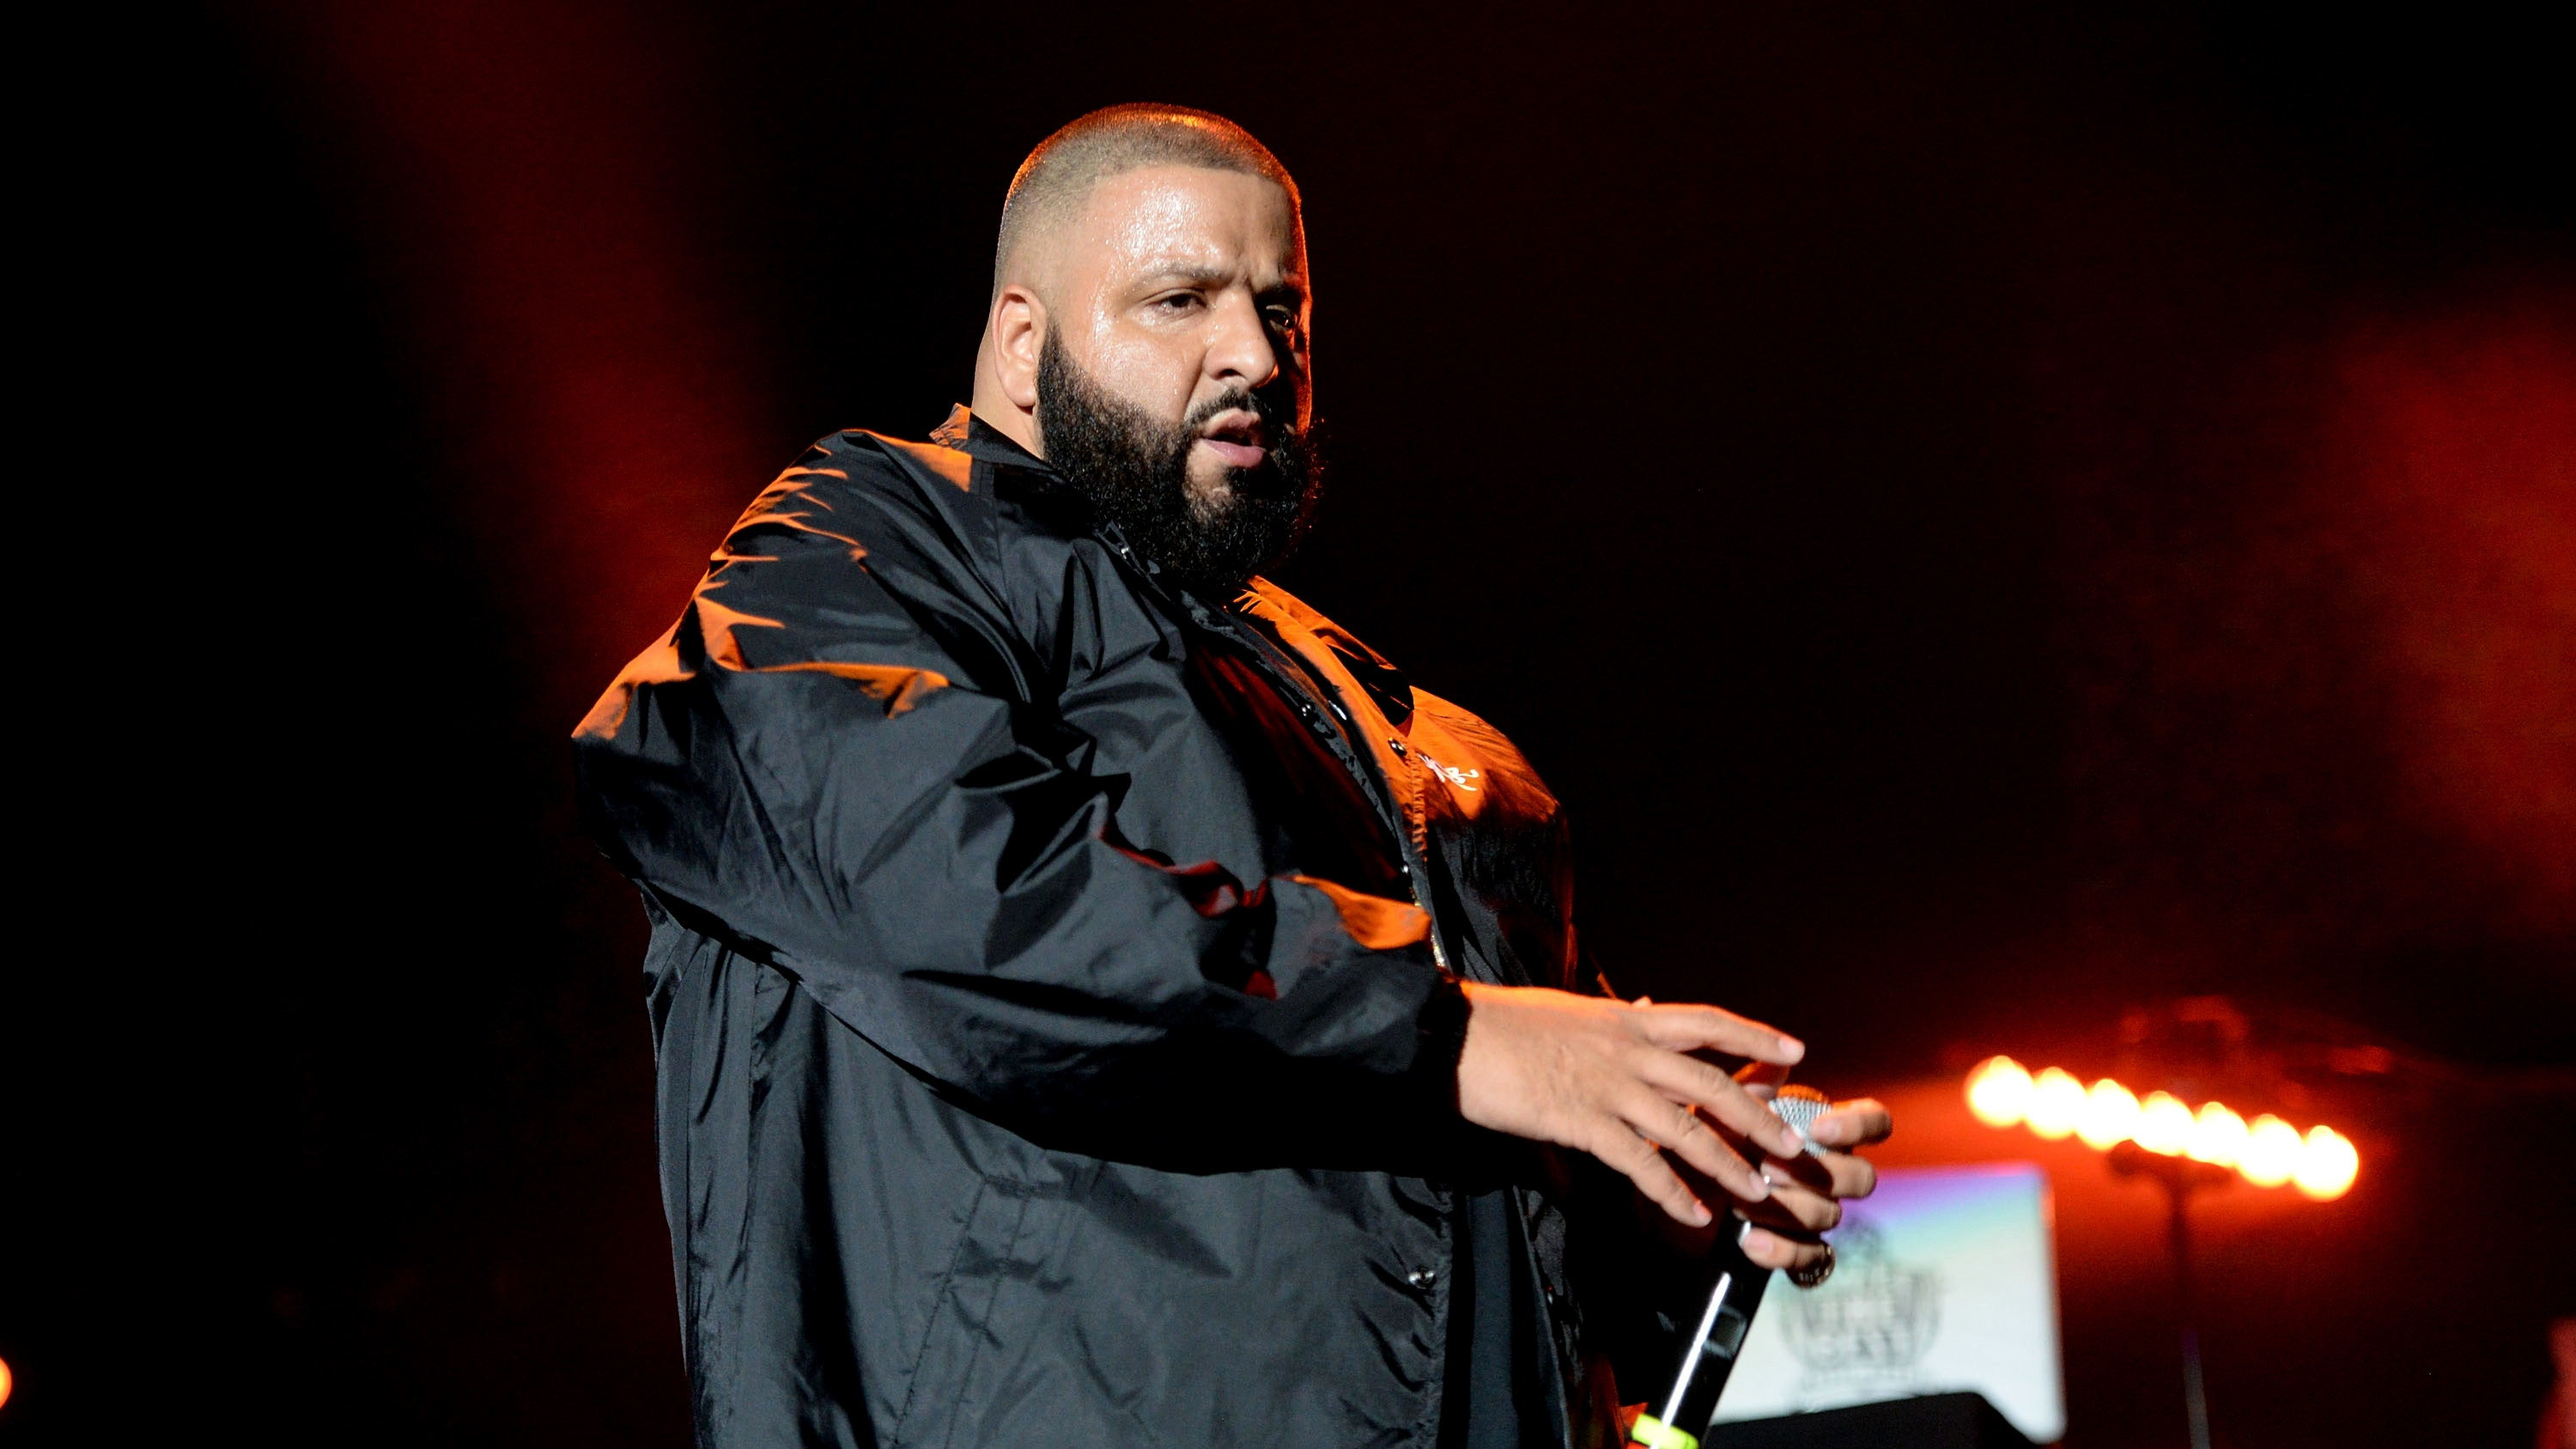 DJ Khaled Wallpapers Images Photos Pictures Backgrounds 3000x1687